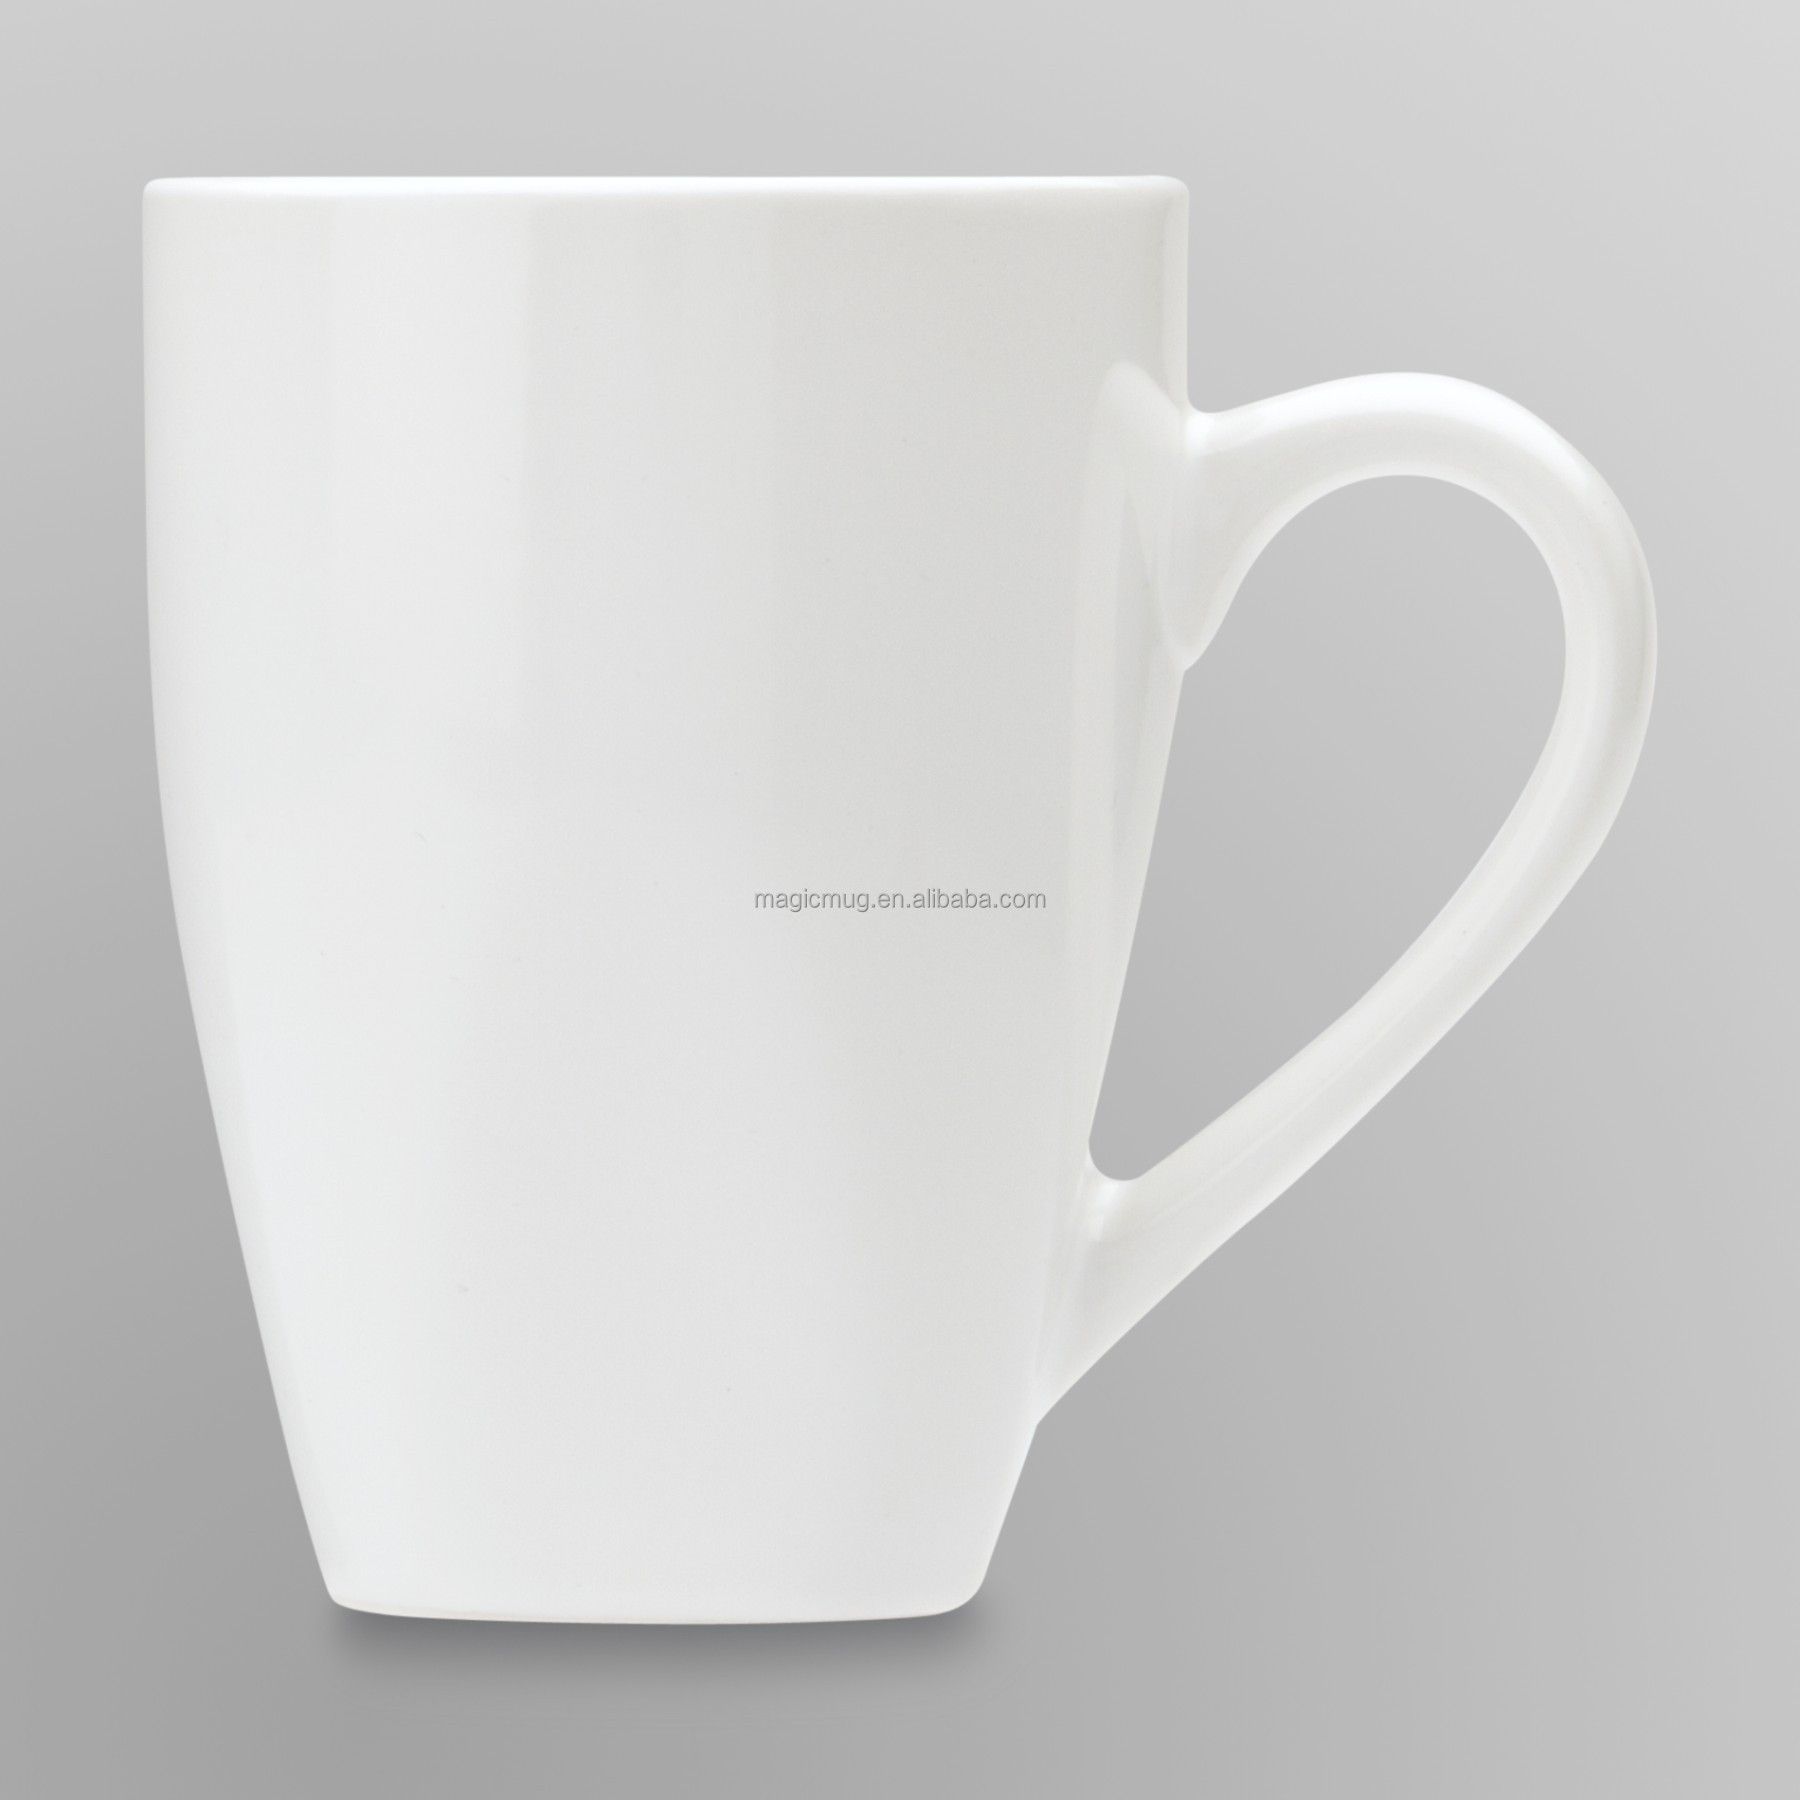 Bulk Household Items Ceramic Plain White Coffee Mug